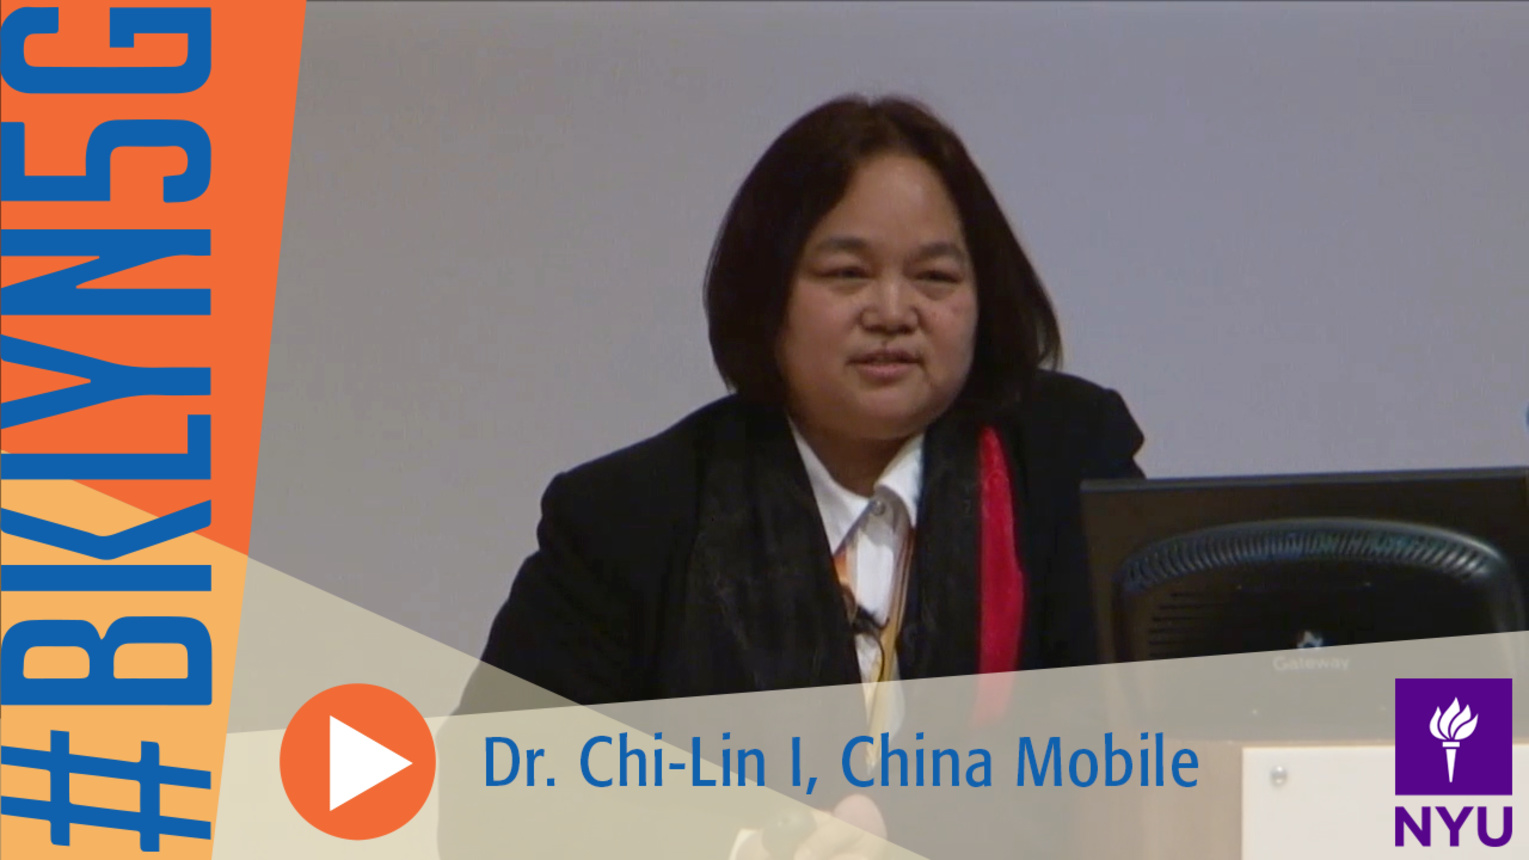 Brooklyn 5G Summit 2014: CMRI Vision on 5G by Dr. Chih-Lin I